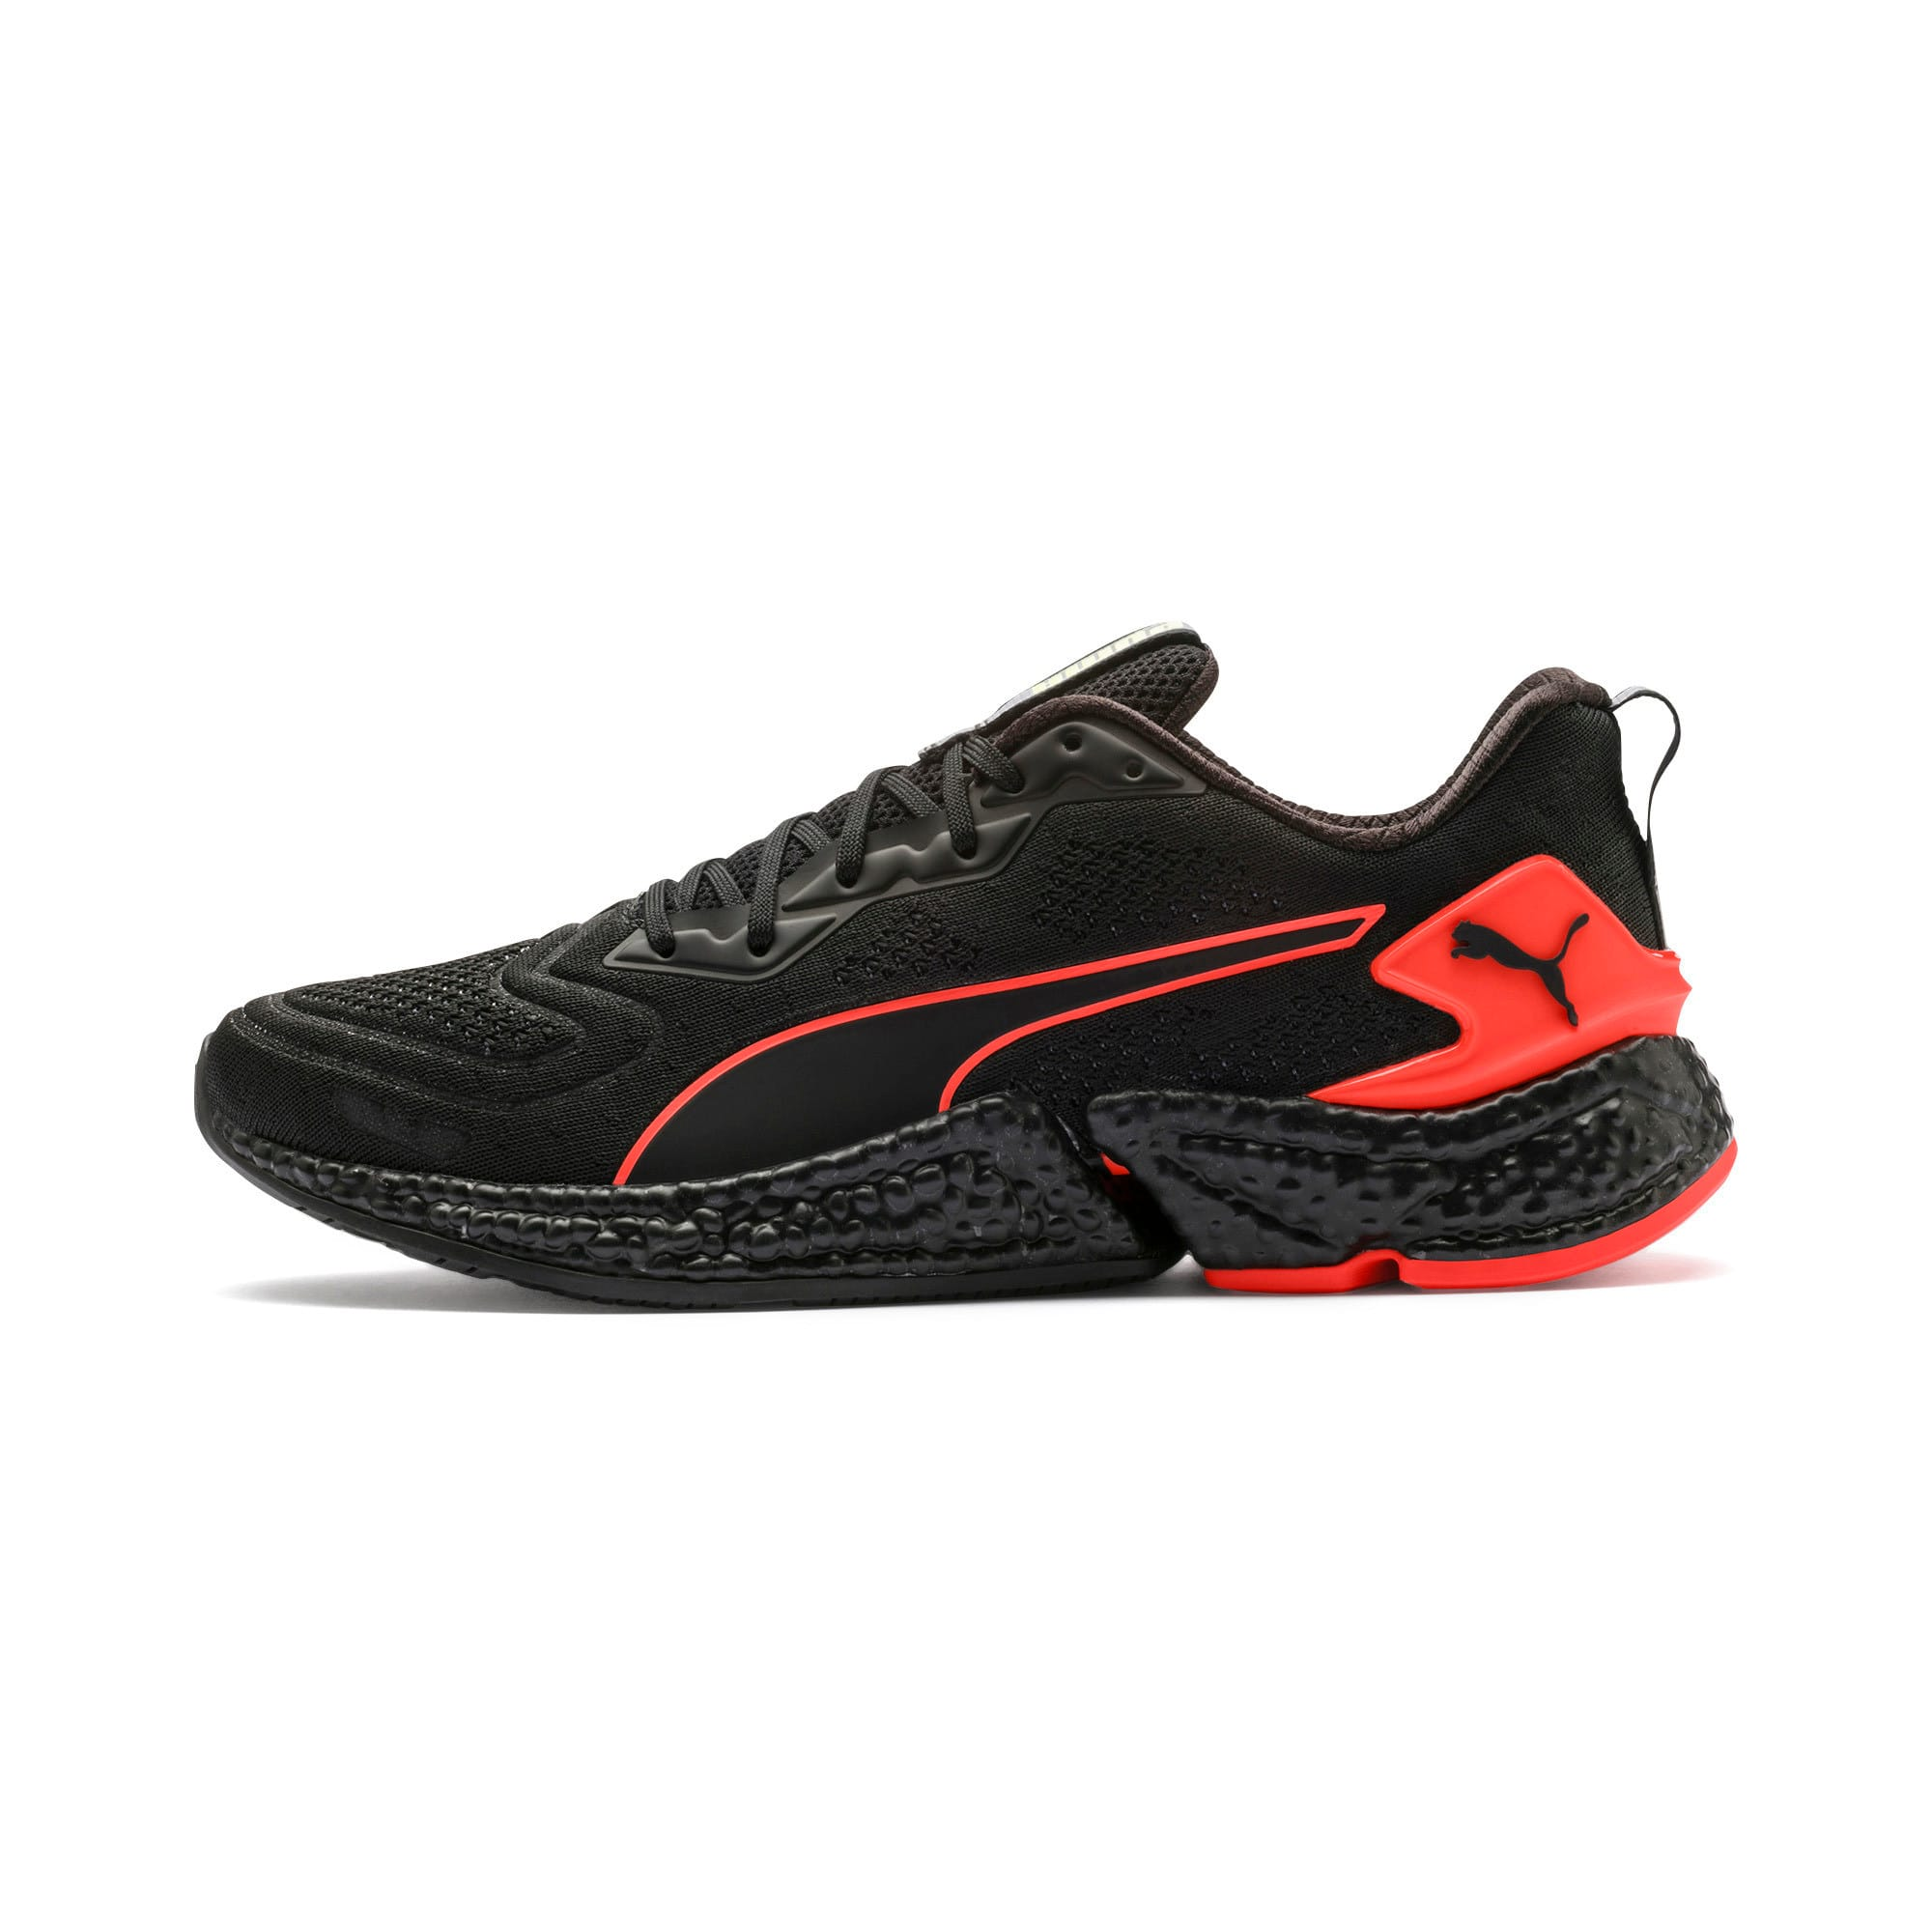 Thumbnail 1 of HYBRID SPEED Orbiter Men's Running Shoes, Black-Nrgy Red-Yellow, medium-IND